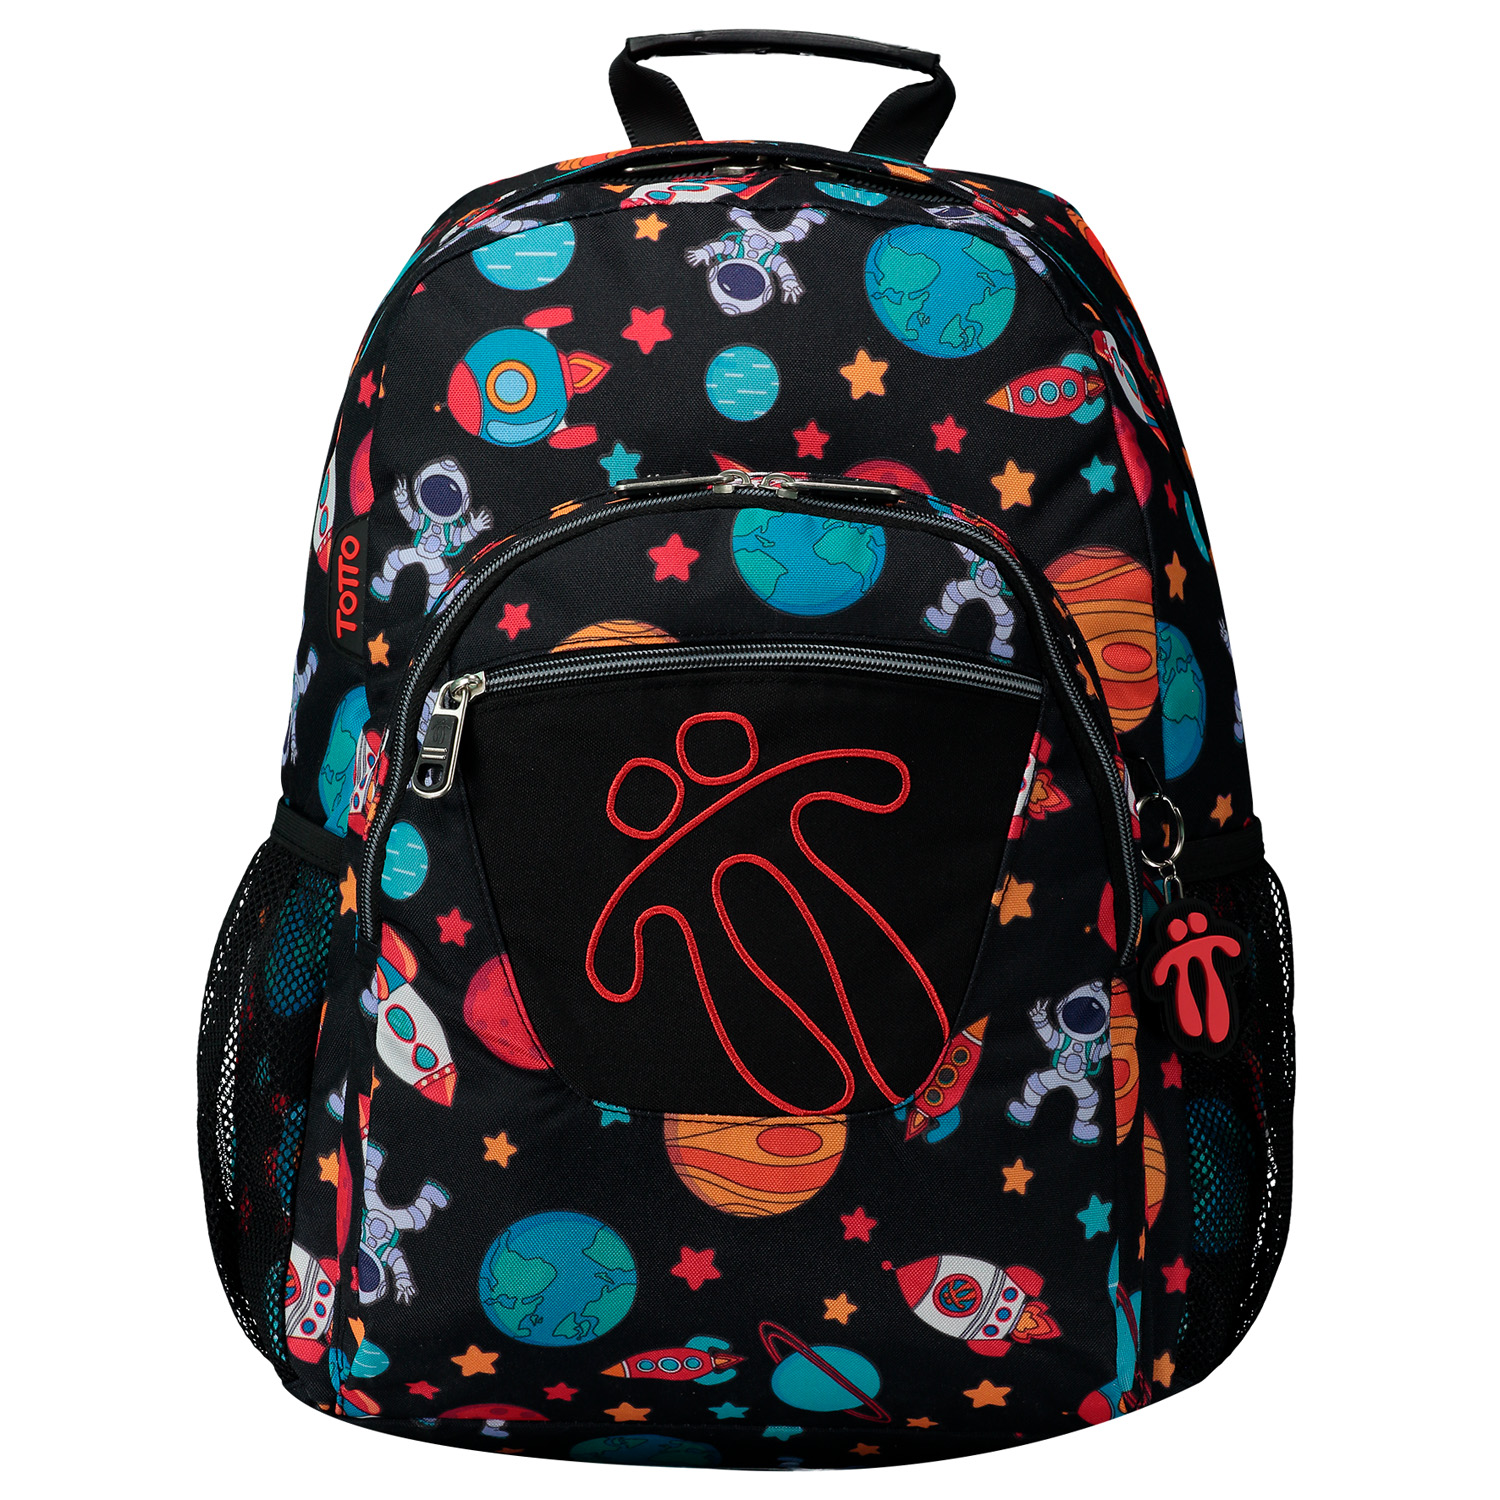 Mochila escolar adaptable a carro estampado spacey